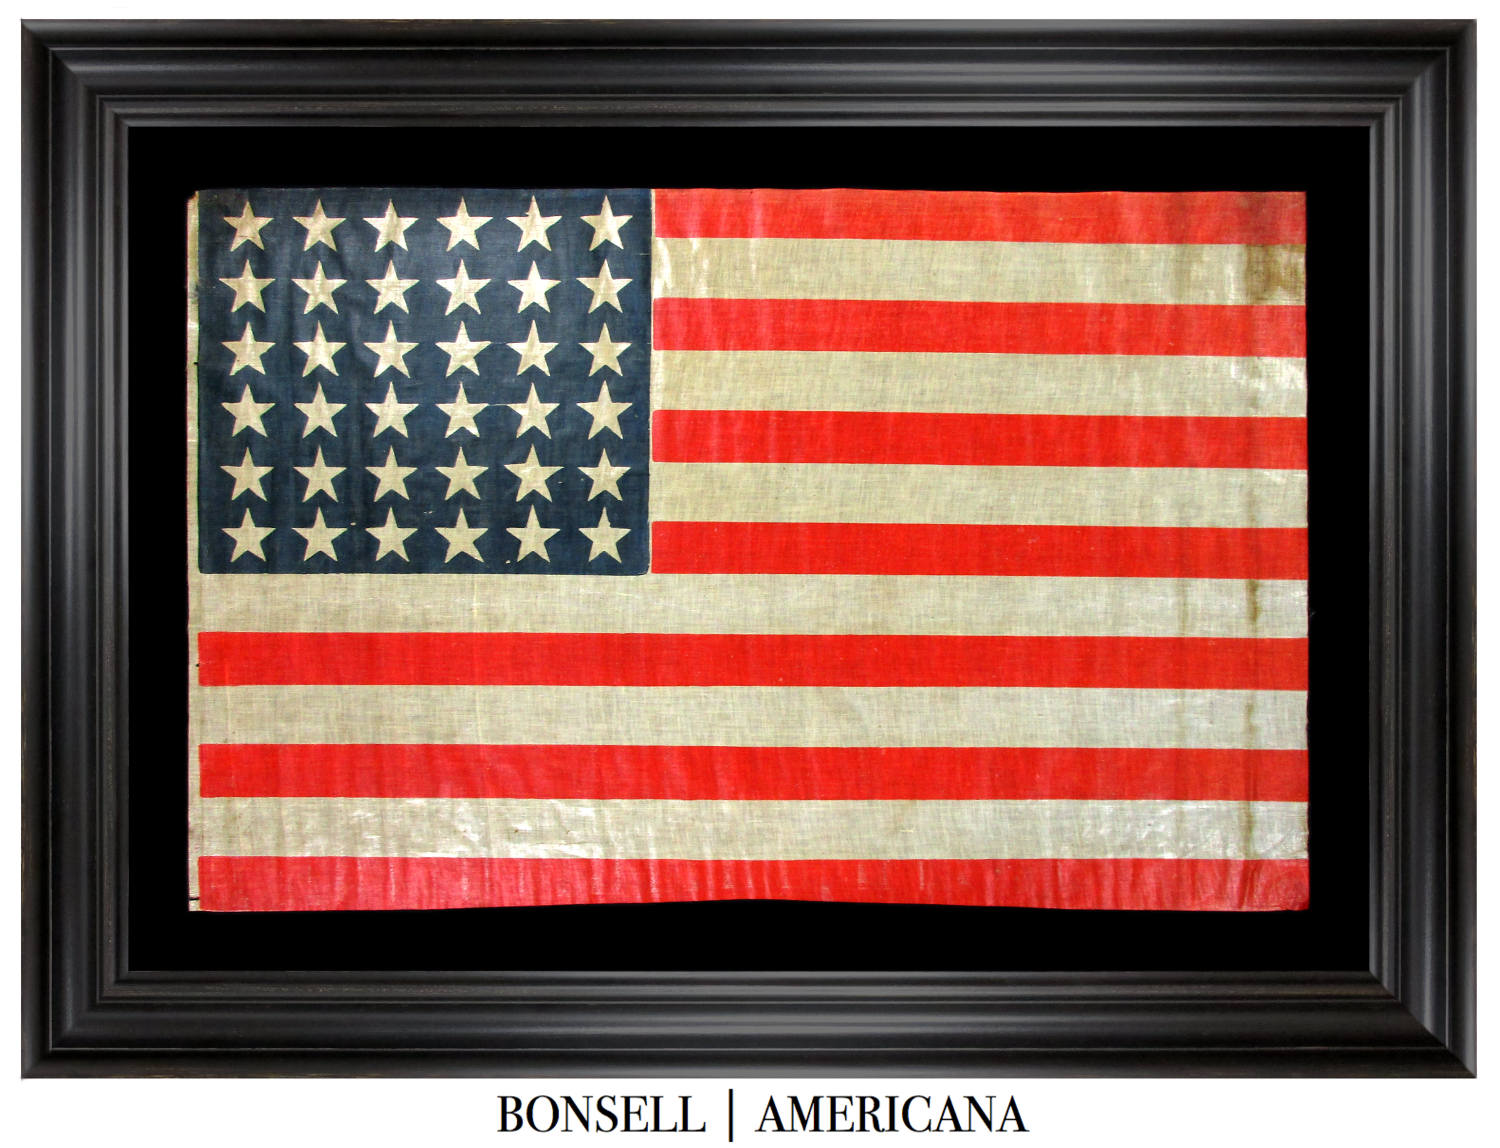 Antique Flag with Rectilinear Star Pattern